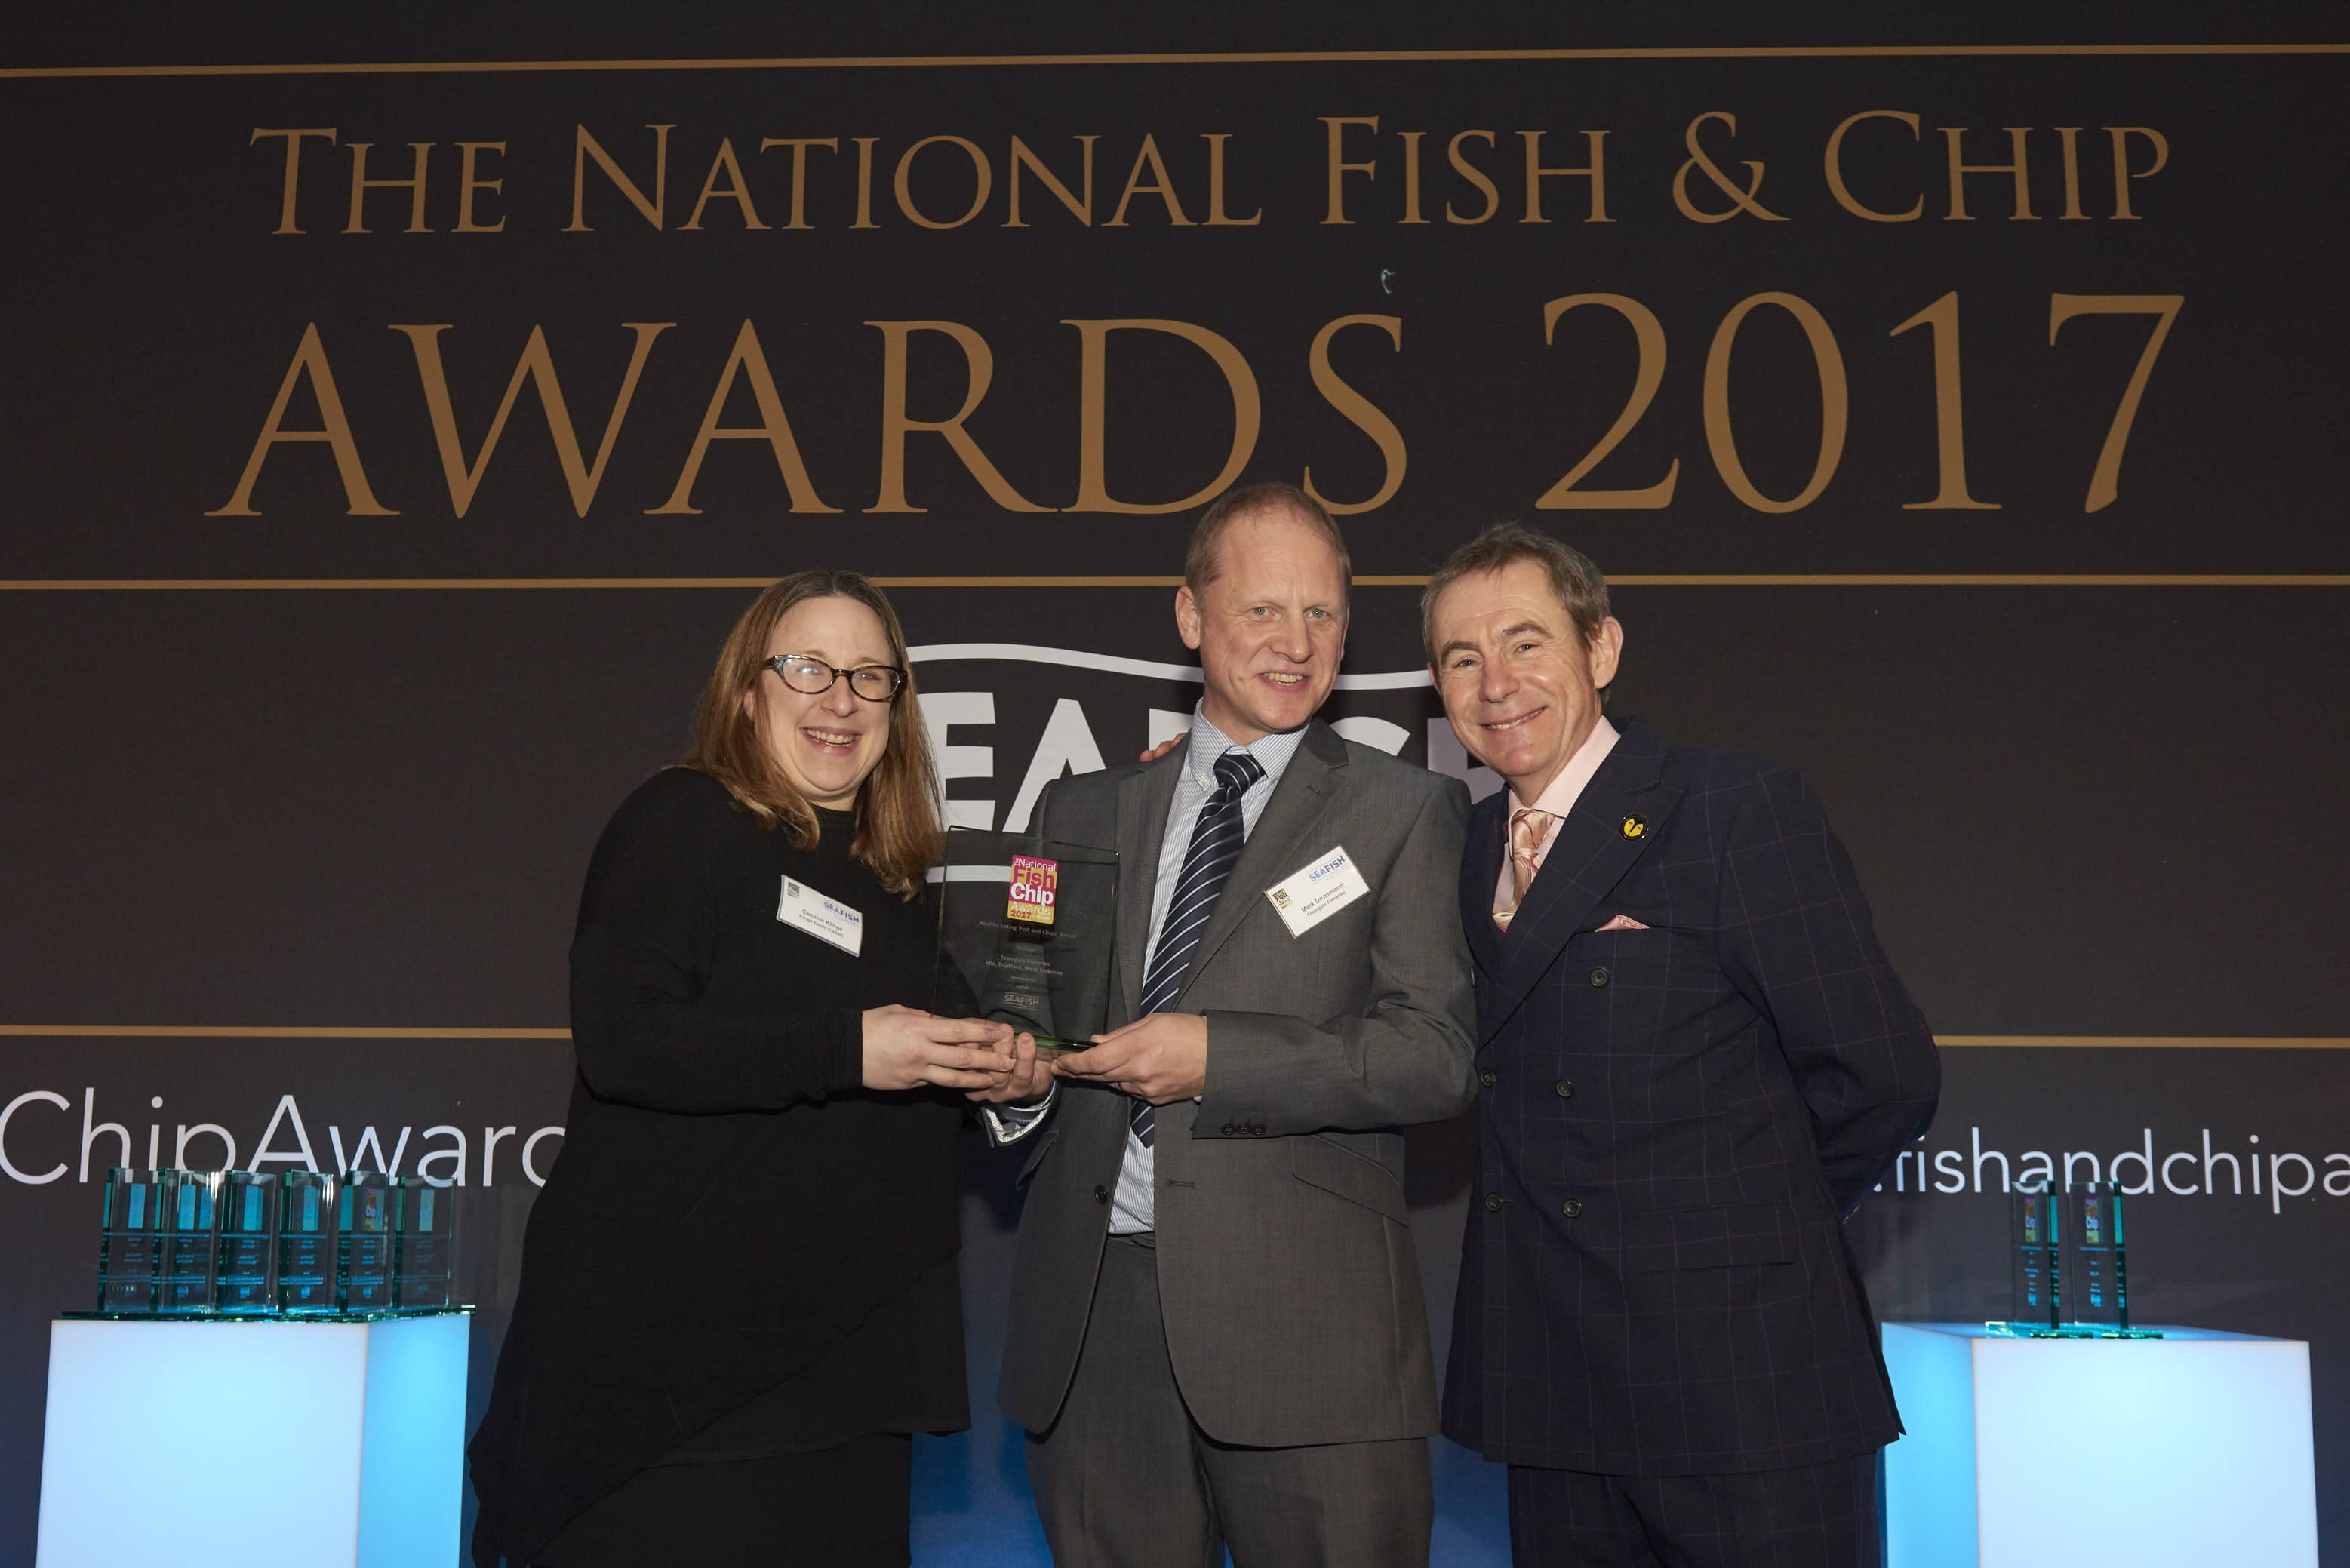 L-R Sponsor Caroline Klinge, Mark Drummond, Towngate Fisheries and Nigel Barden - Healthy Eating 'Fish and Chips' Award Winner